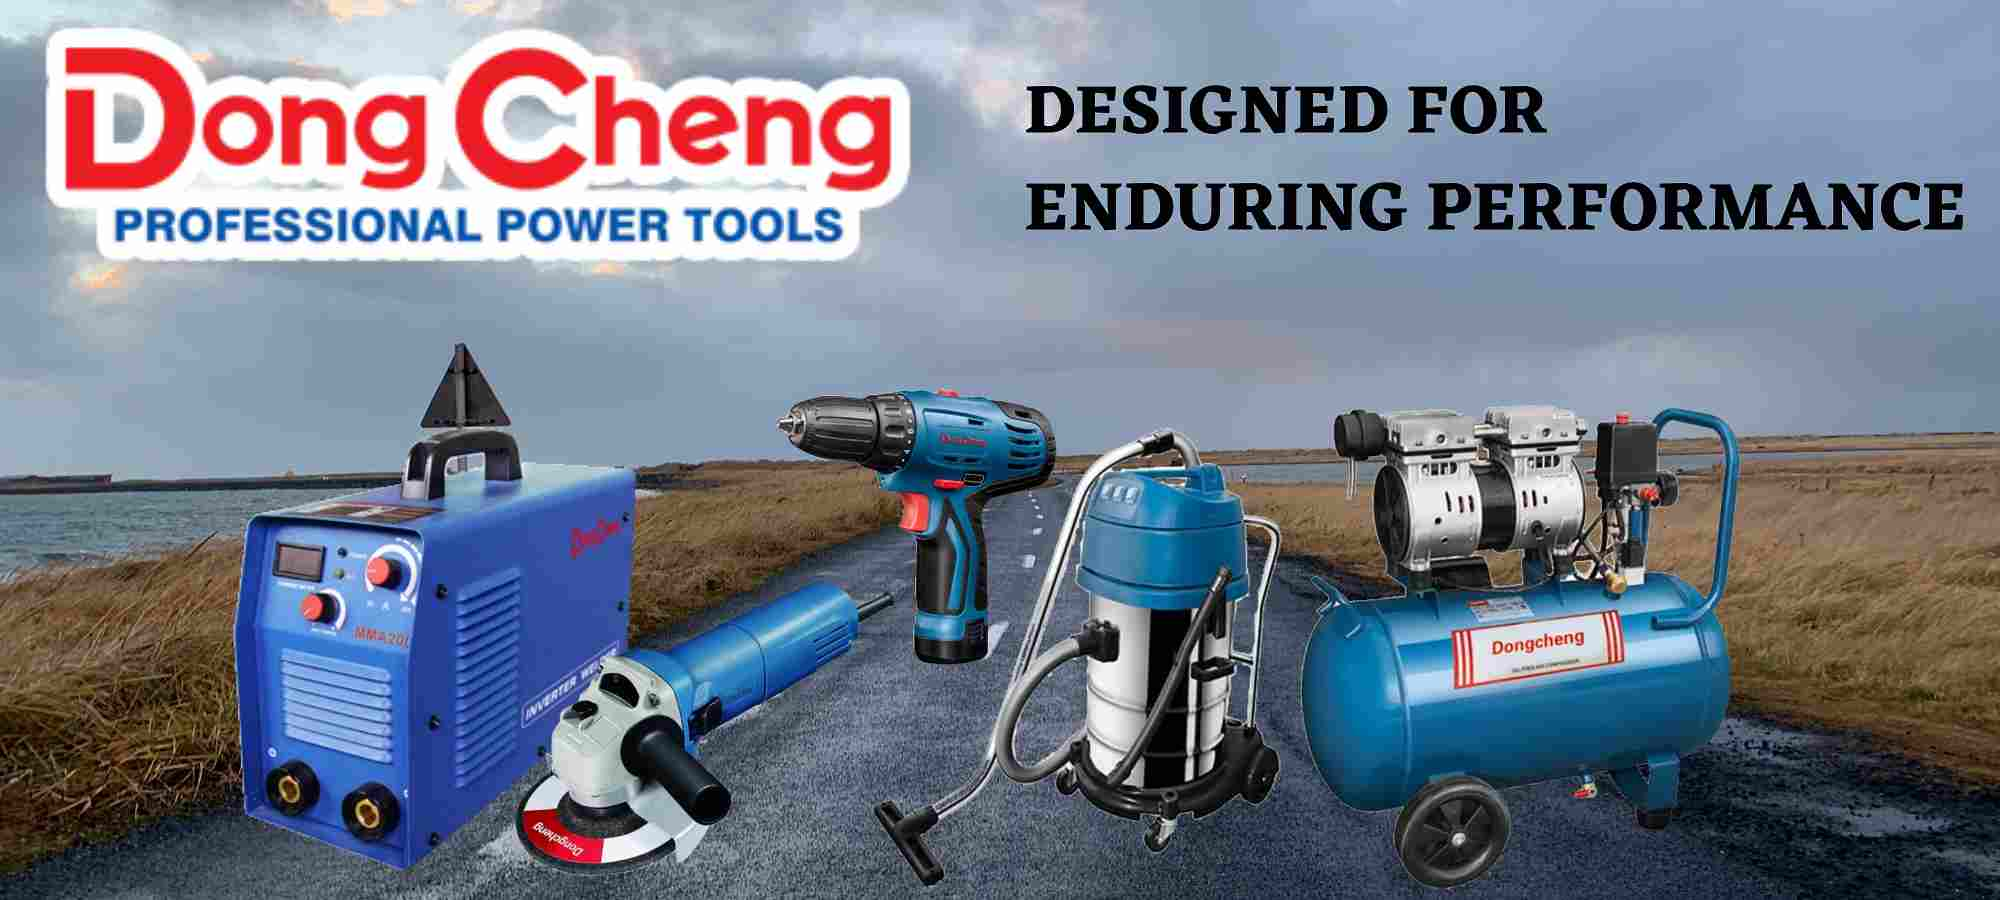 dongcheng-power-tools-brand-page-gz.jpg